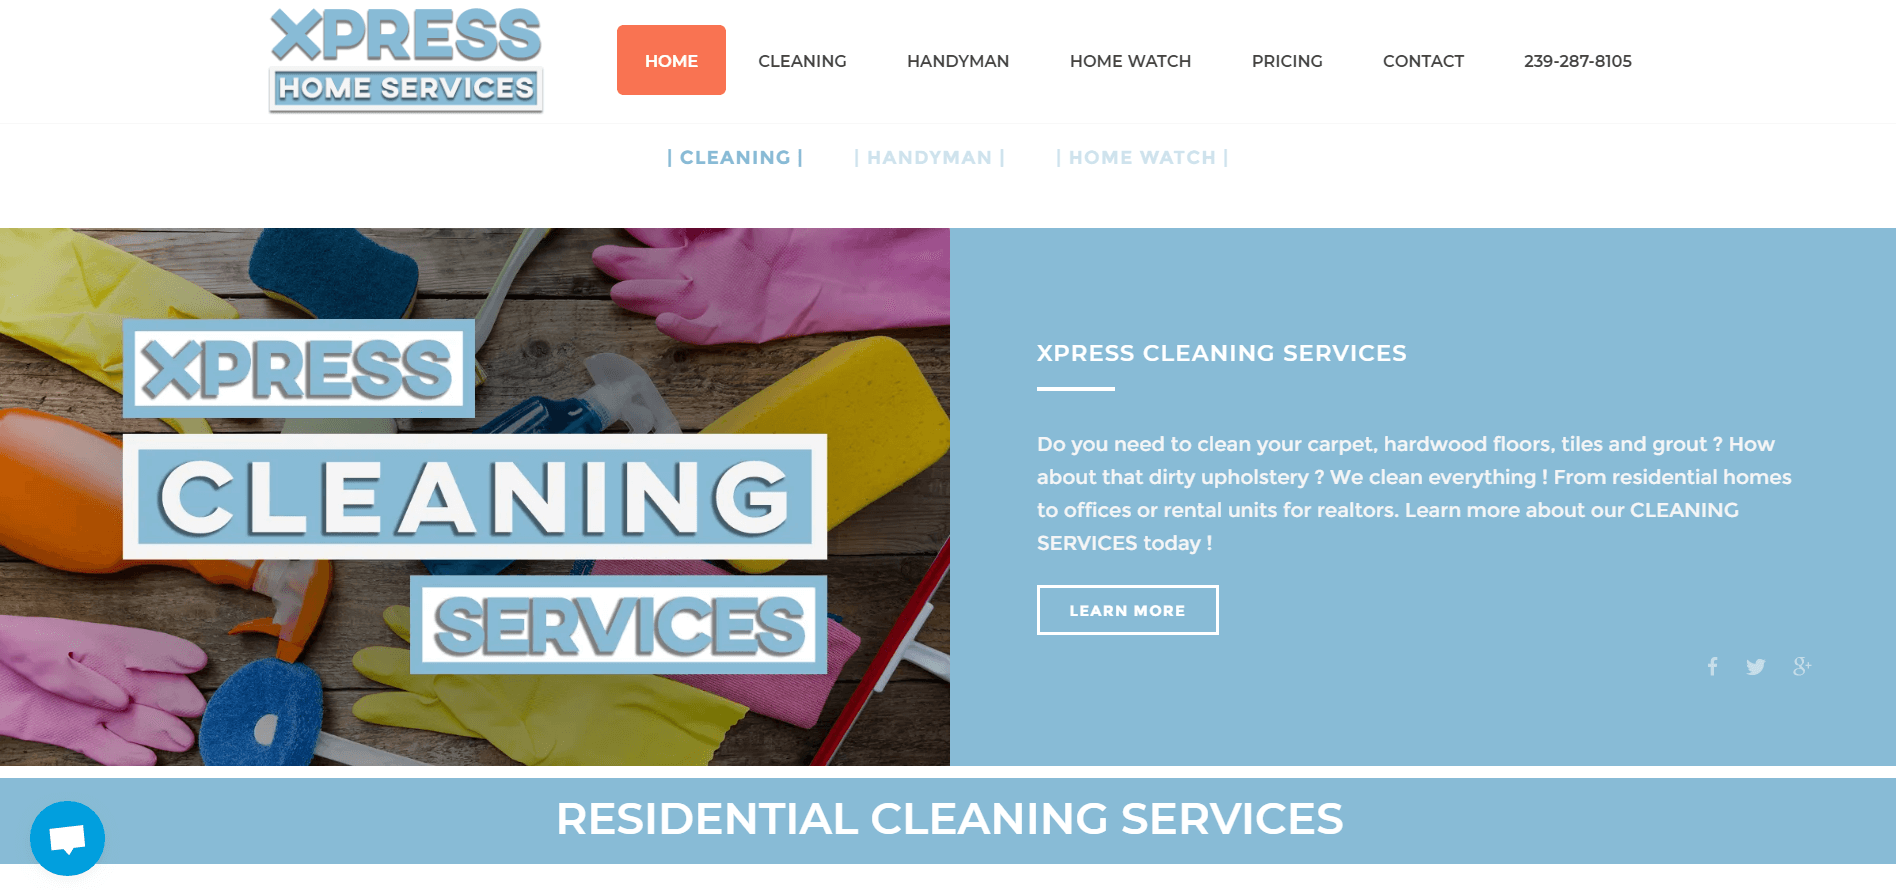 xpress home services splash page